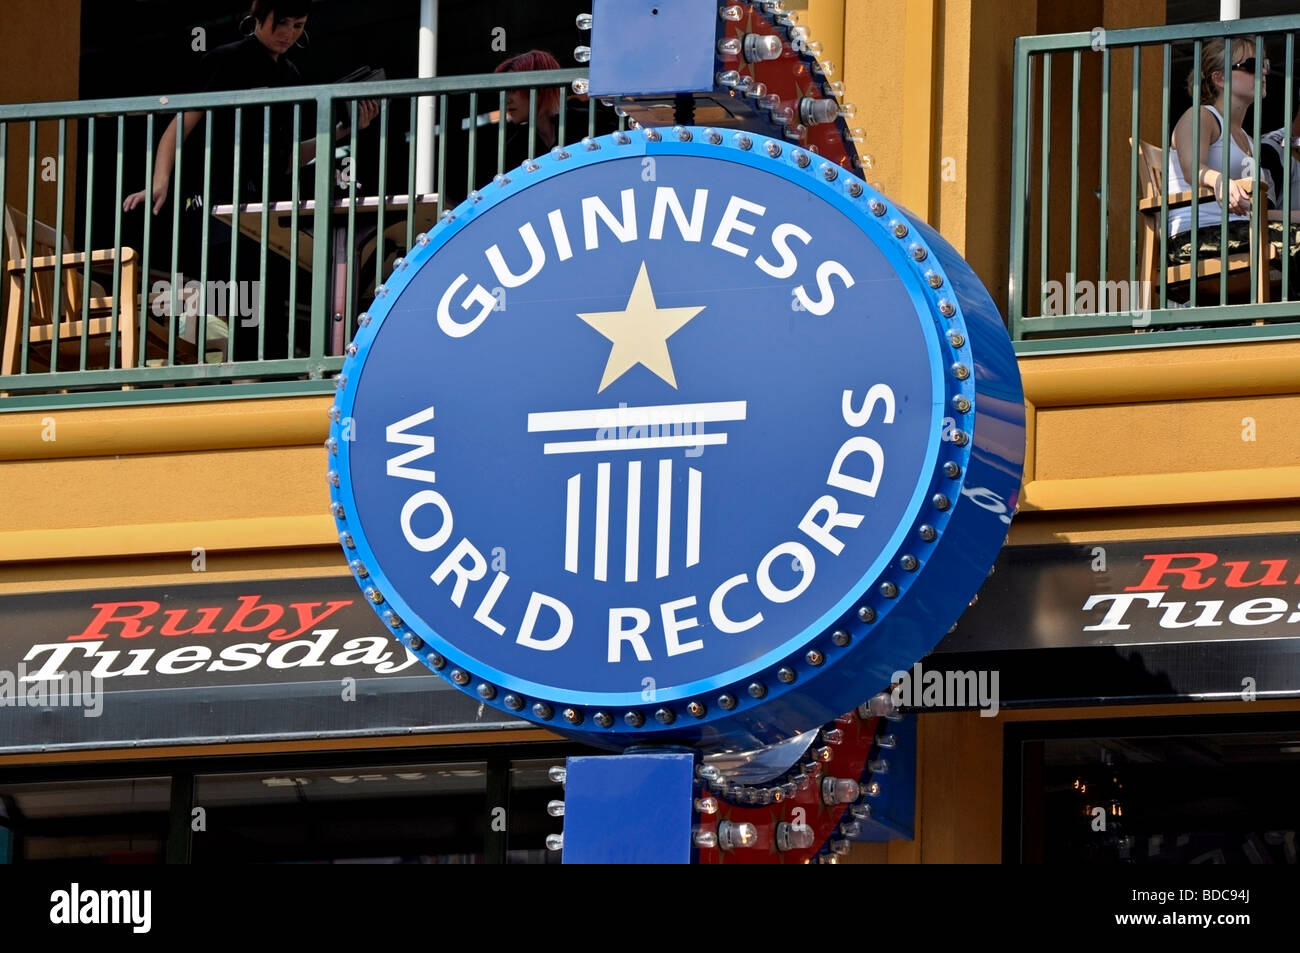 Guinness World Records Sign - Attractions on Clifton Hill, Niagara, Ontario - Stock Image